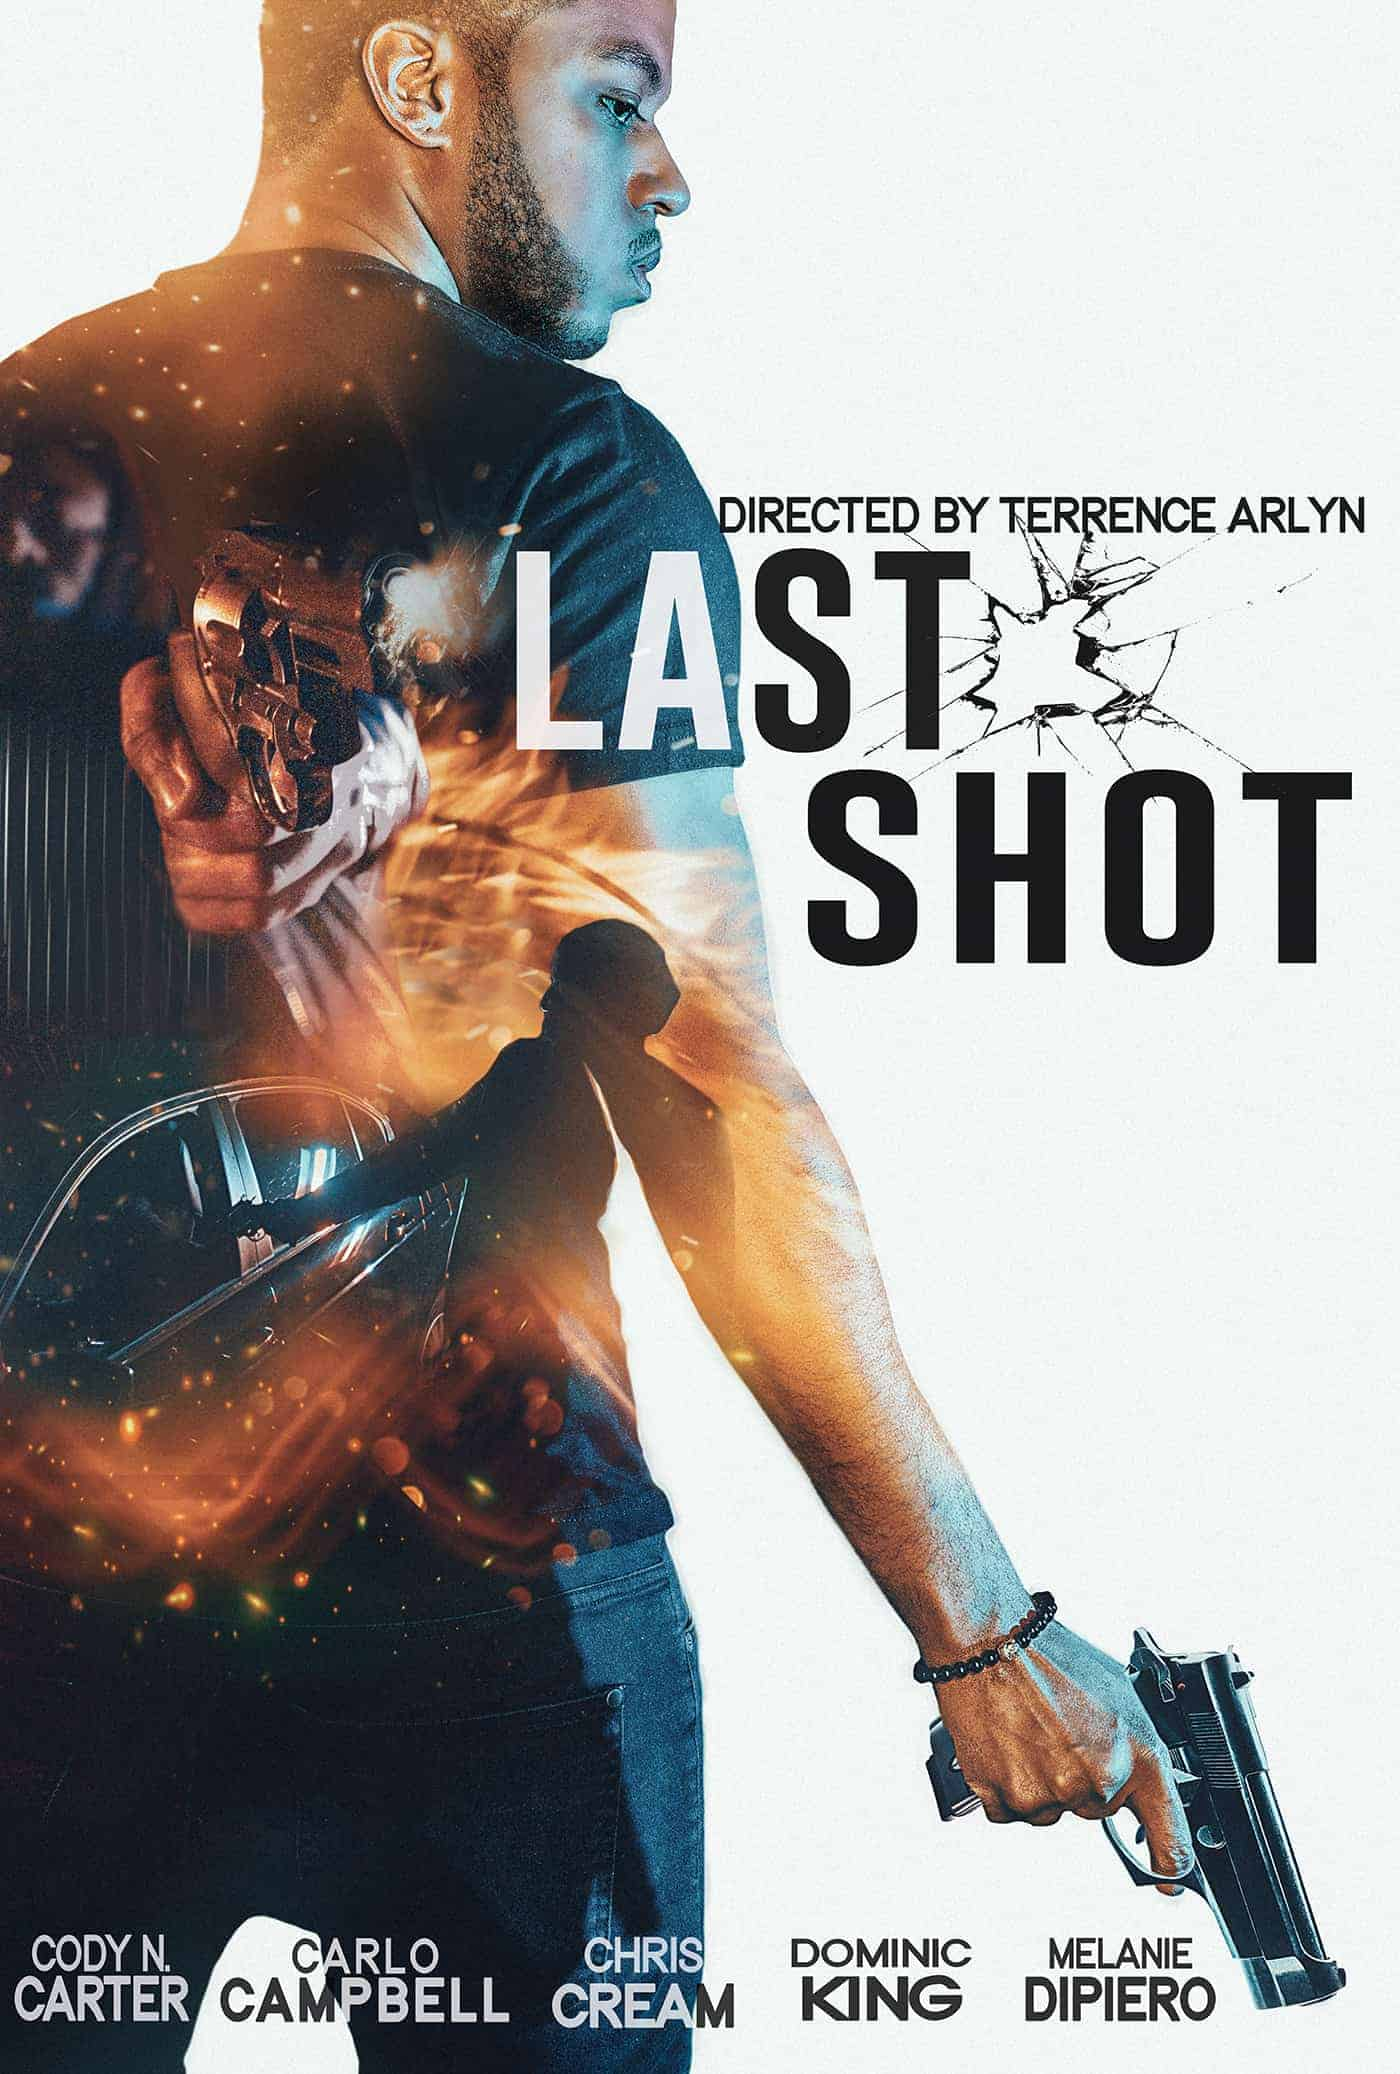 LAST SHOT is Coming soon to VOD and DVD on August 25, 2020 2